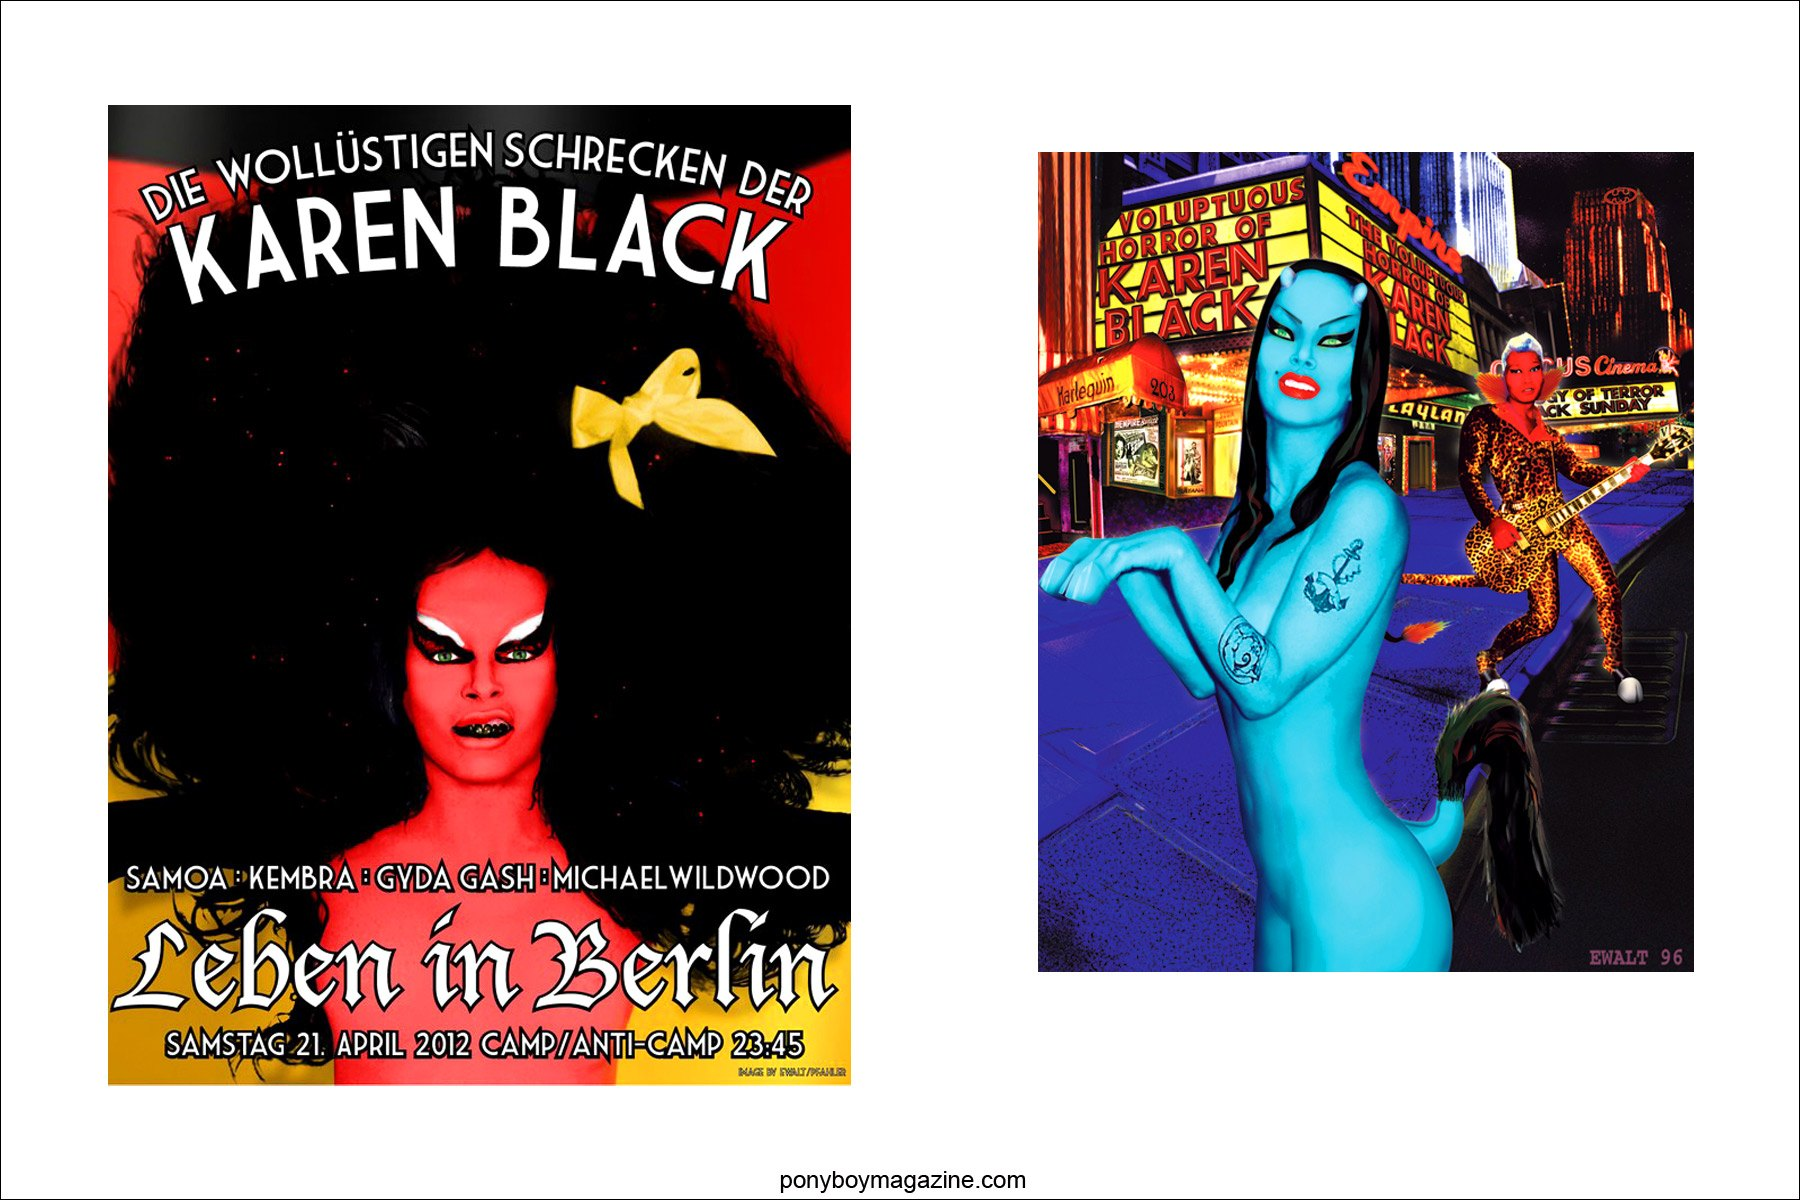 Images of Voluptuous Horror of Karen Black performer Kembra Pfahler by New York artist Scott Ewalt, Ponyboy Magazine.